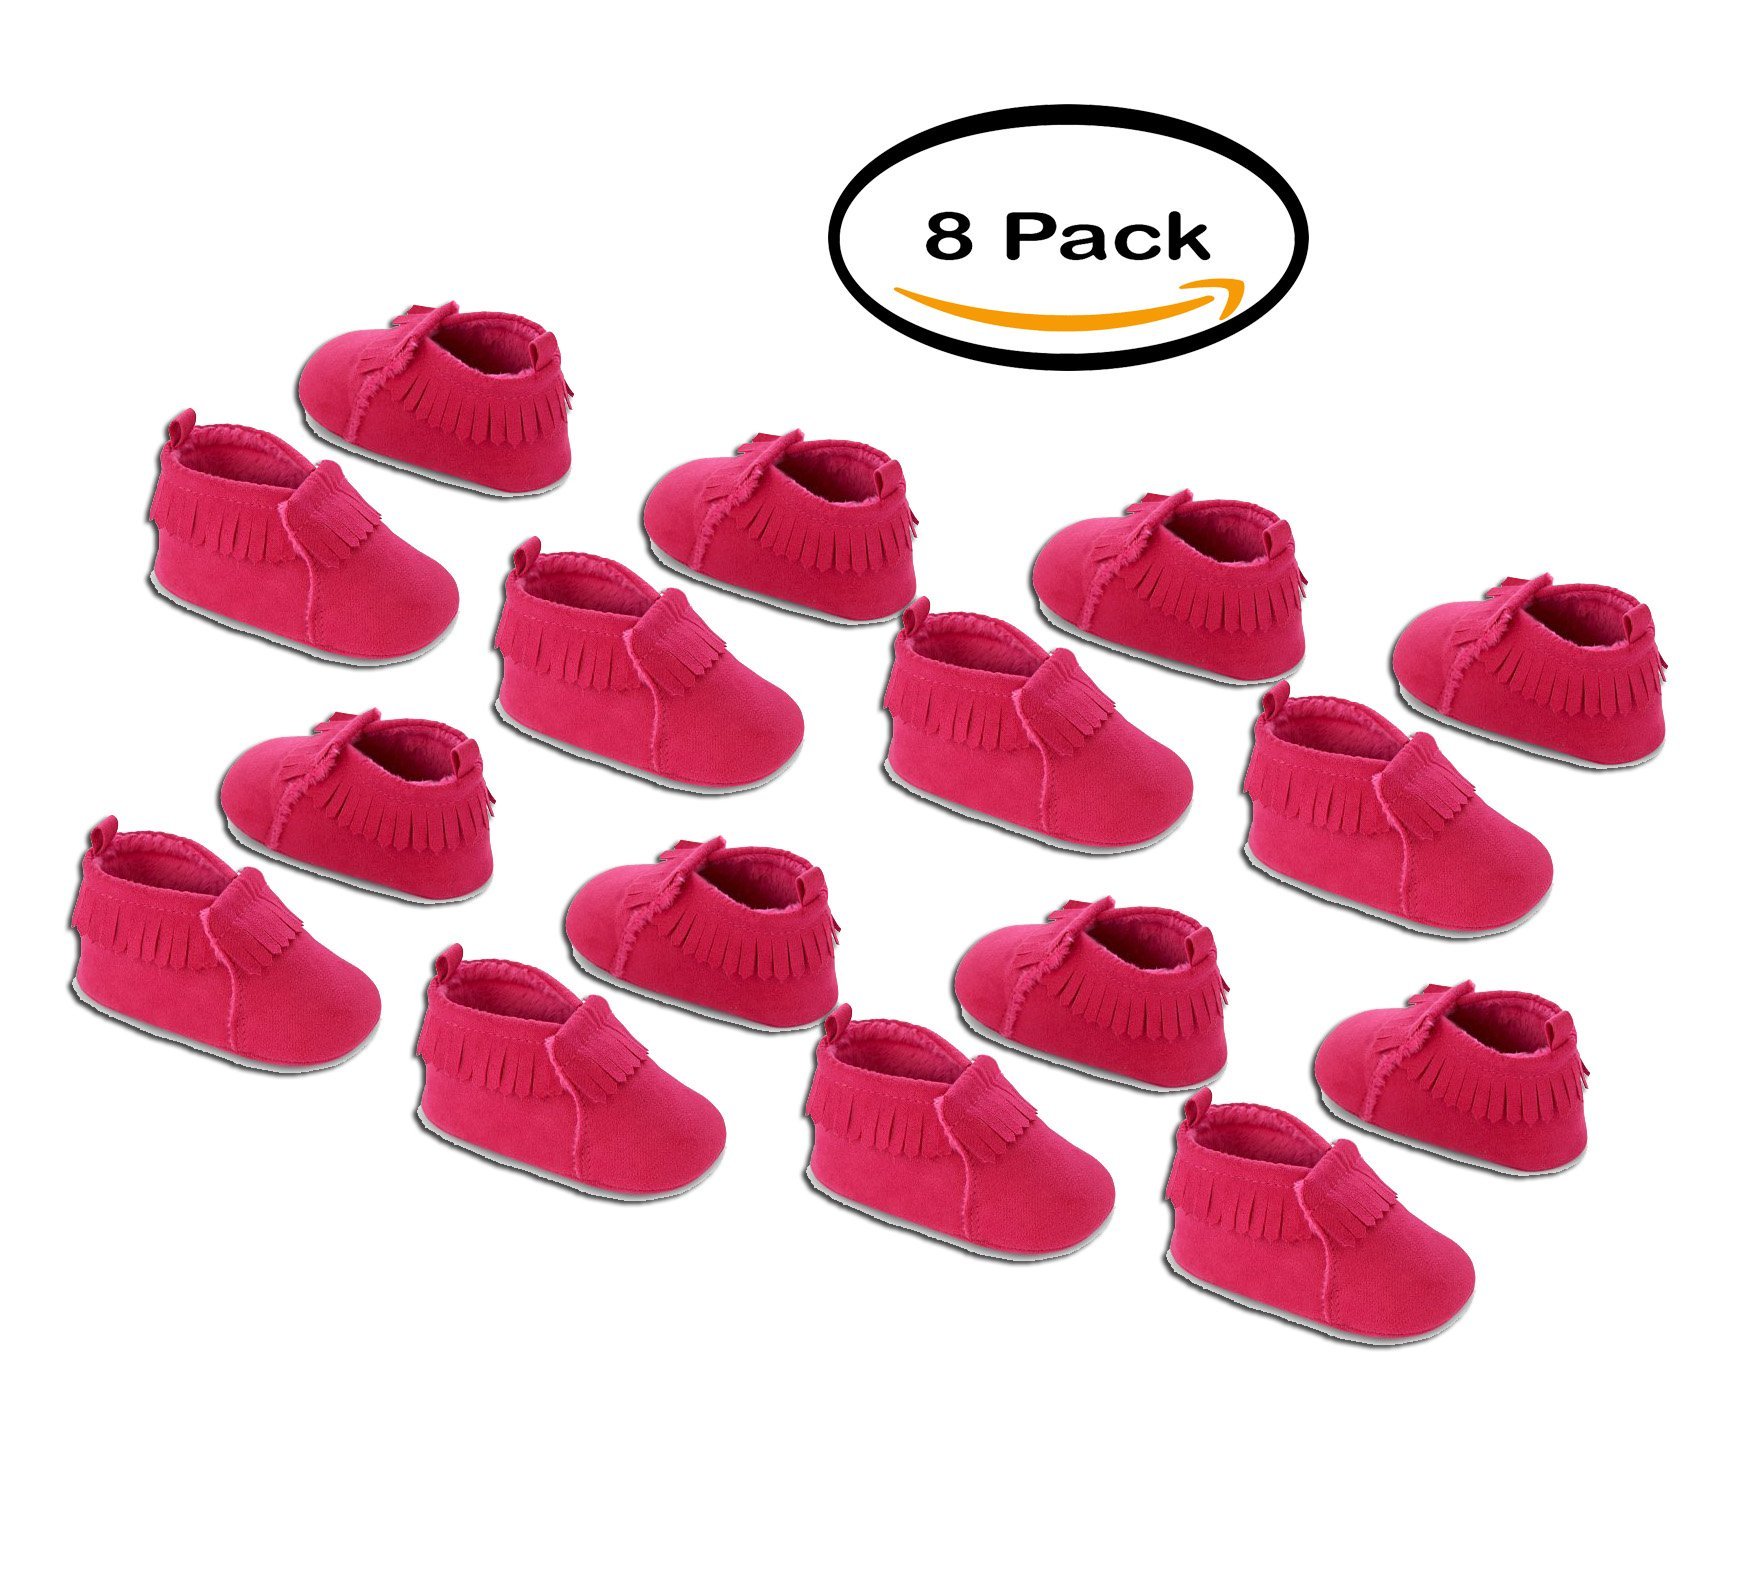 PACK OF 8 - Child of Mine by Carter's Newborn Baby Girl Pink Moccasins